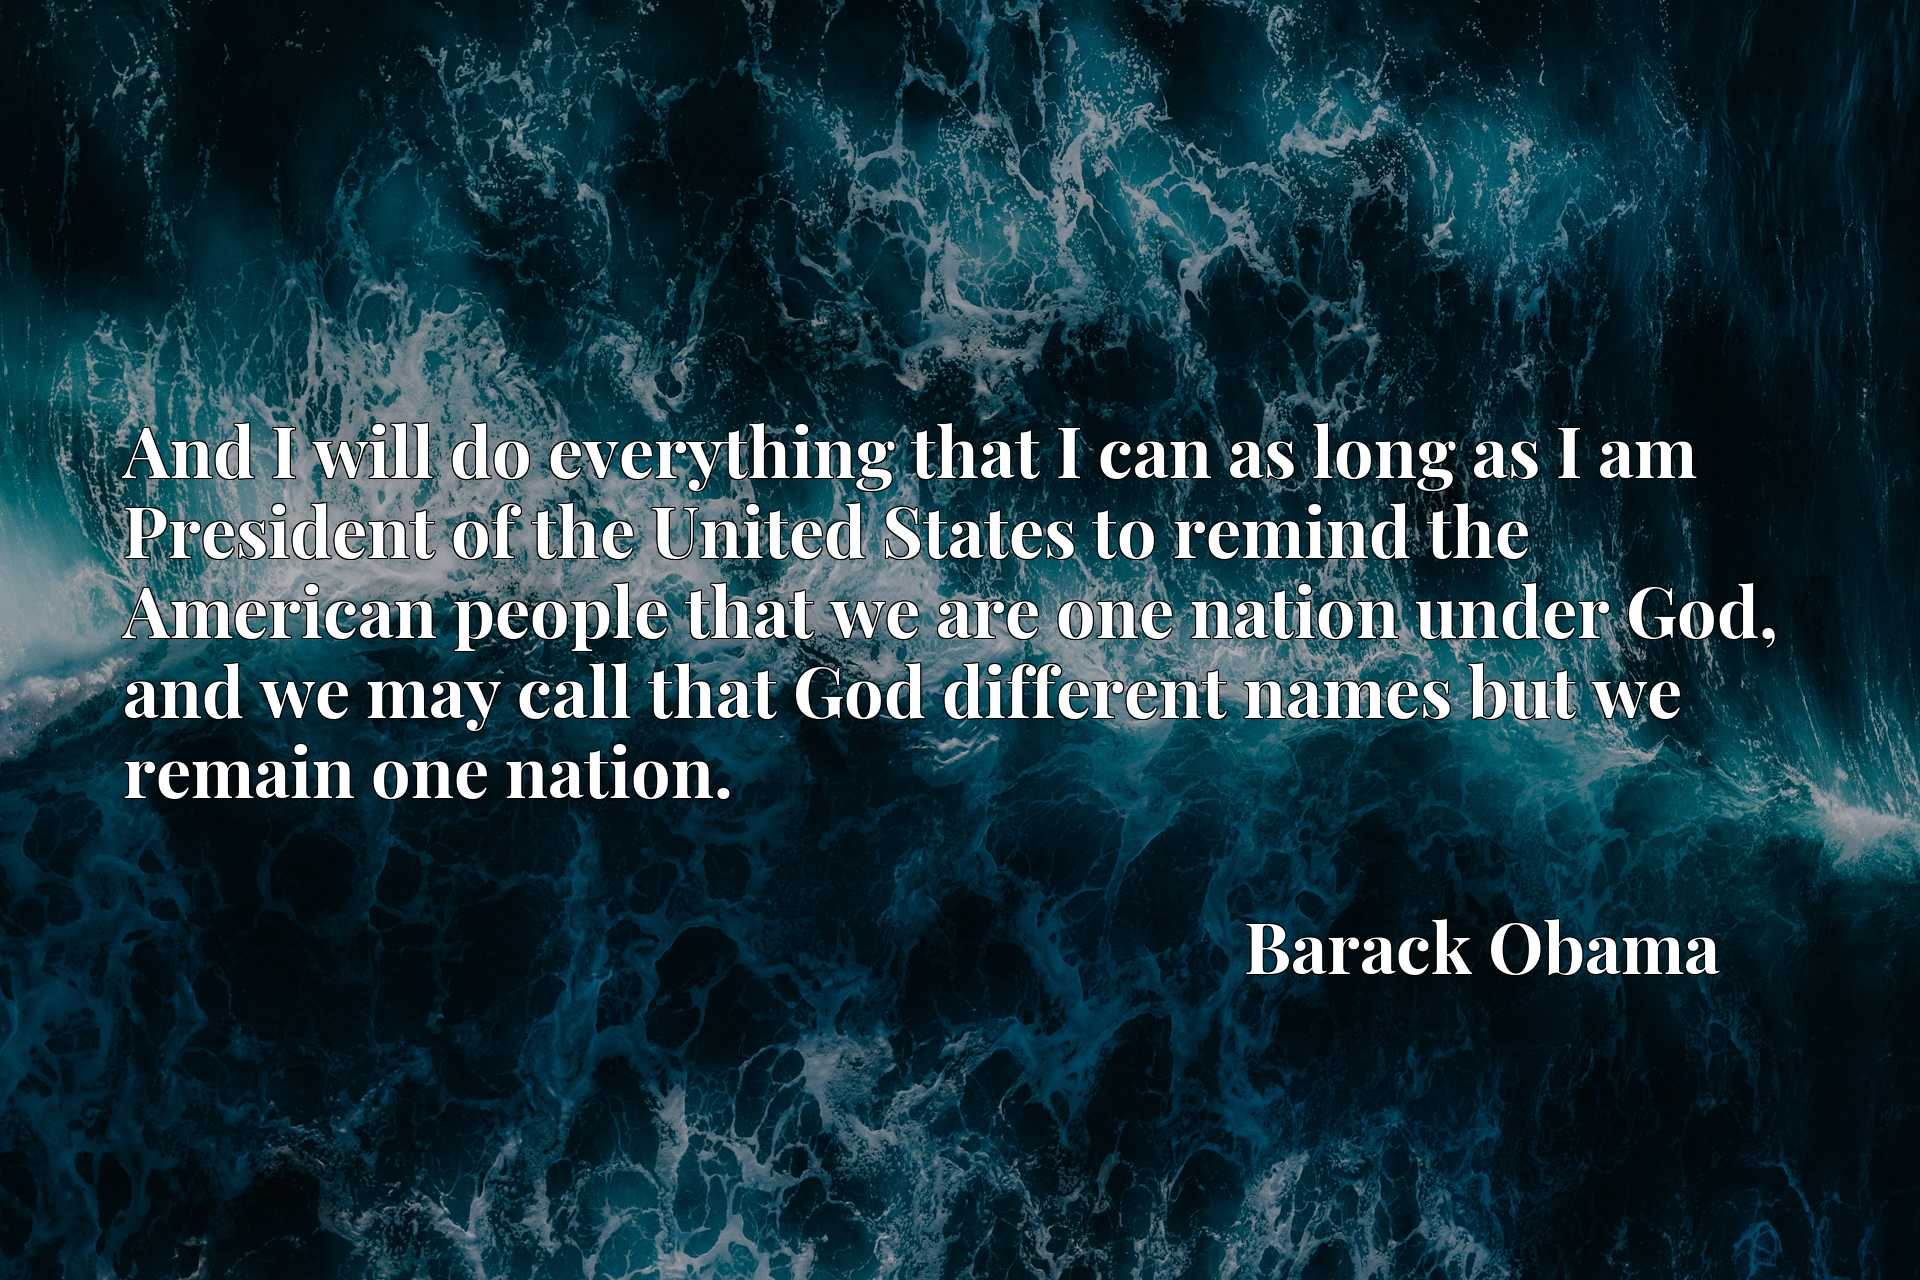 And I will do everything that I can as long as I am President of the United States to remind the American people that we are one nation under God, and we may call that God different names but we remain one nation.